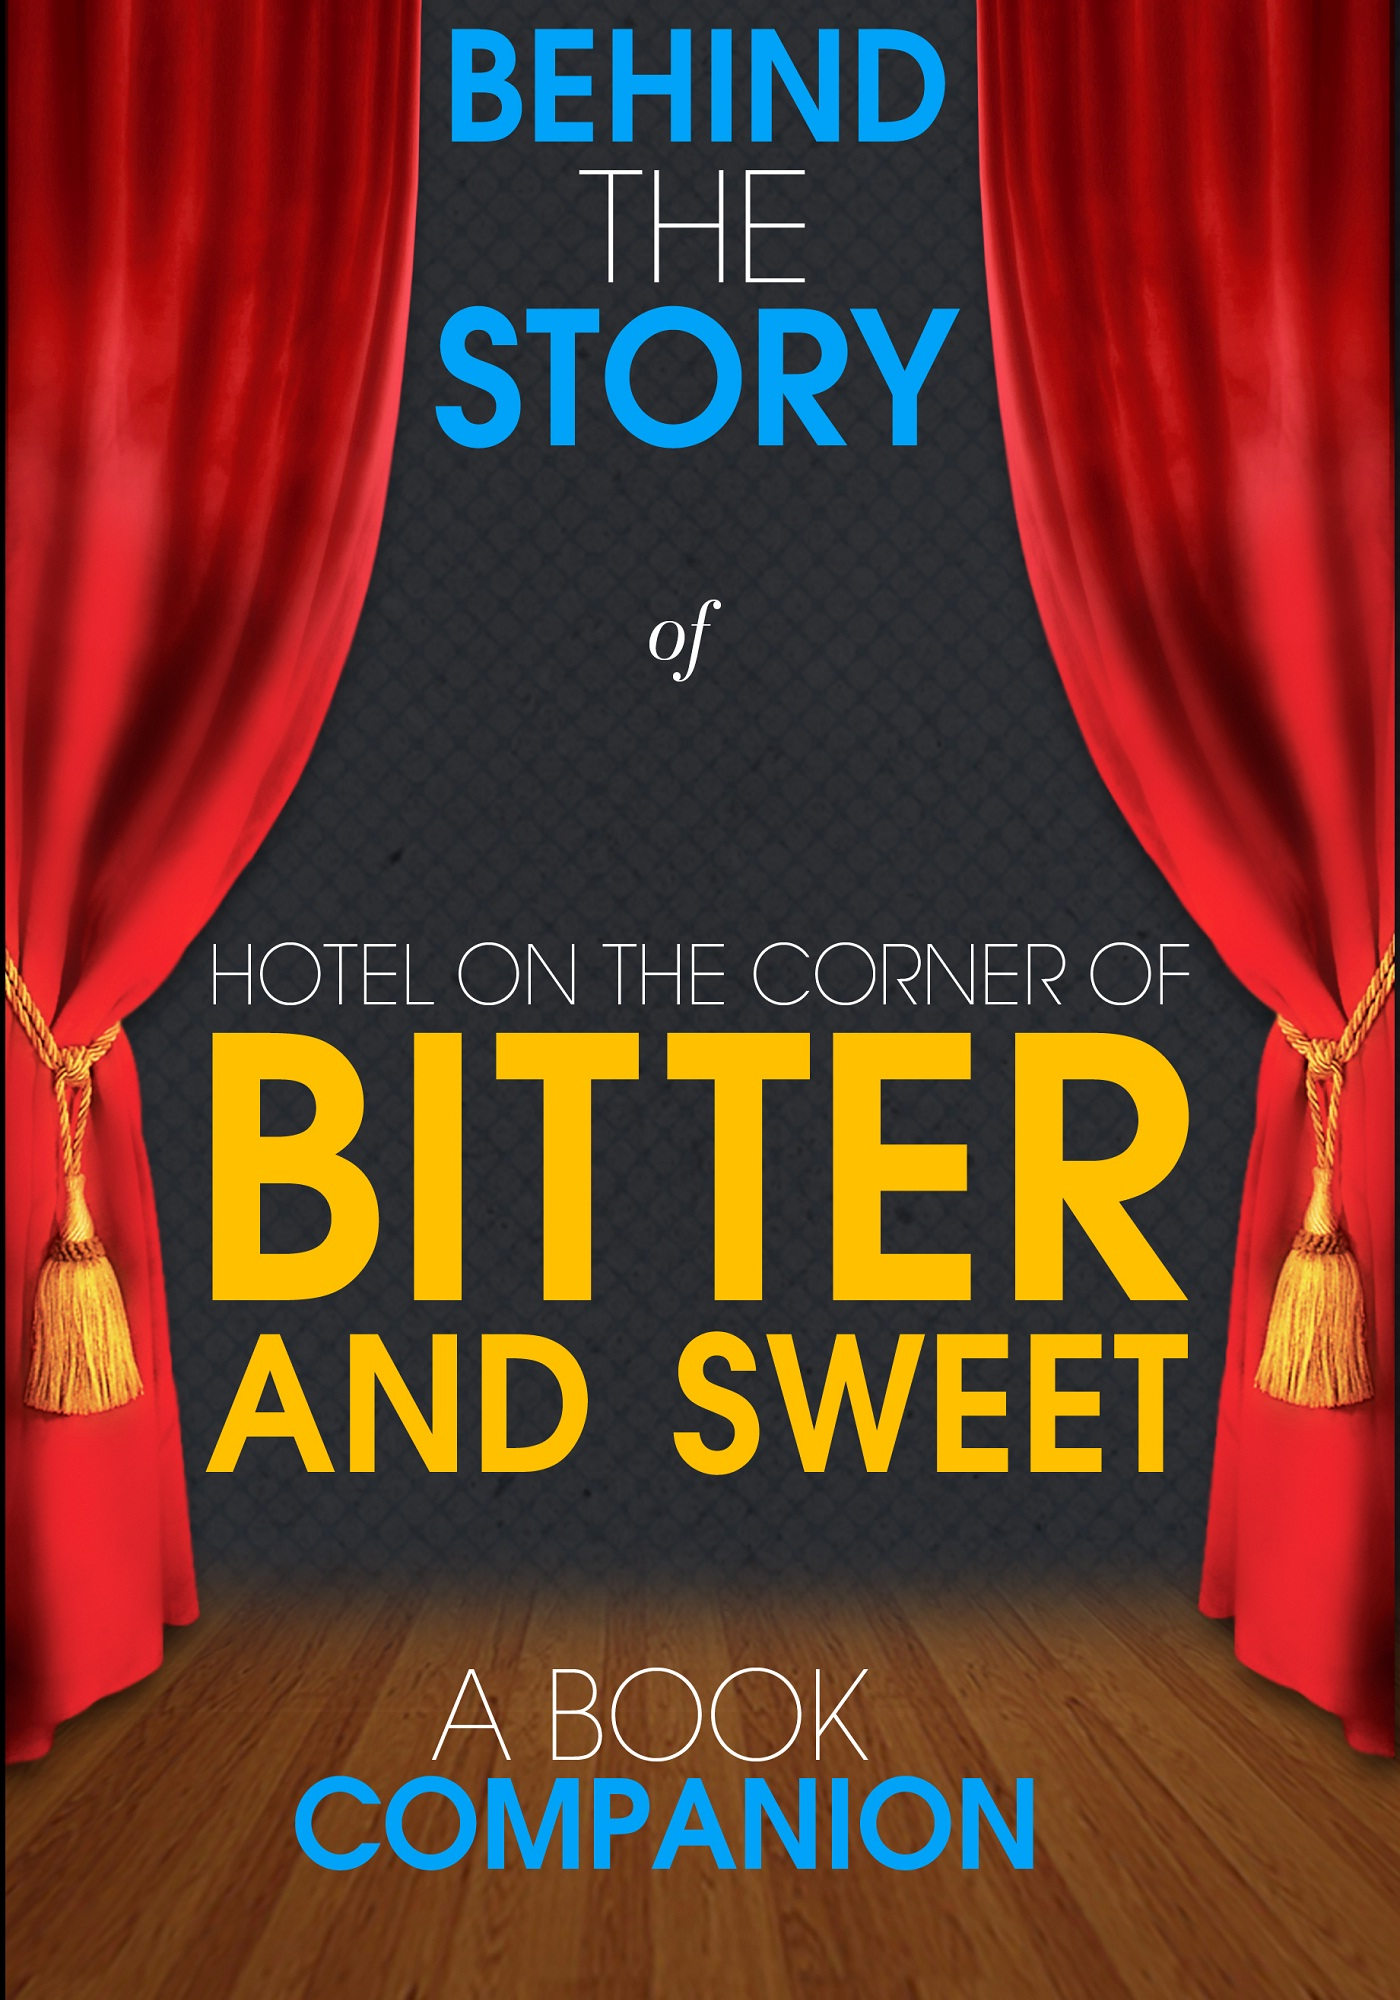 Behind the Story - Hotel on the Corner of Bitter and Sweet - Behind the Story (A Book Companion)